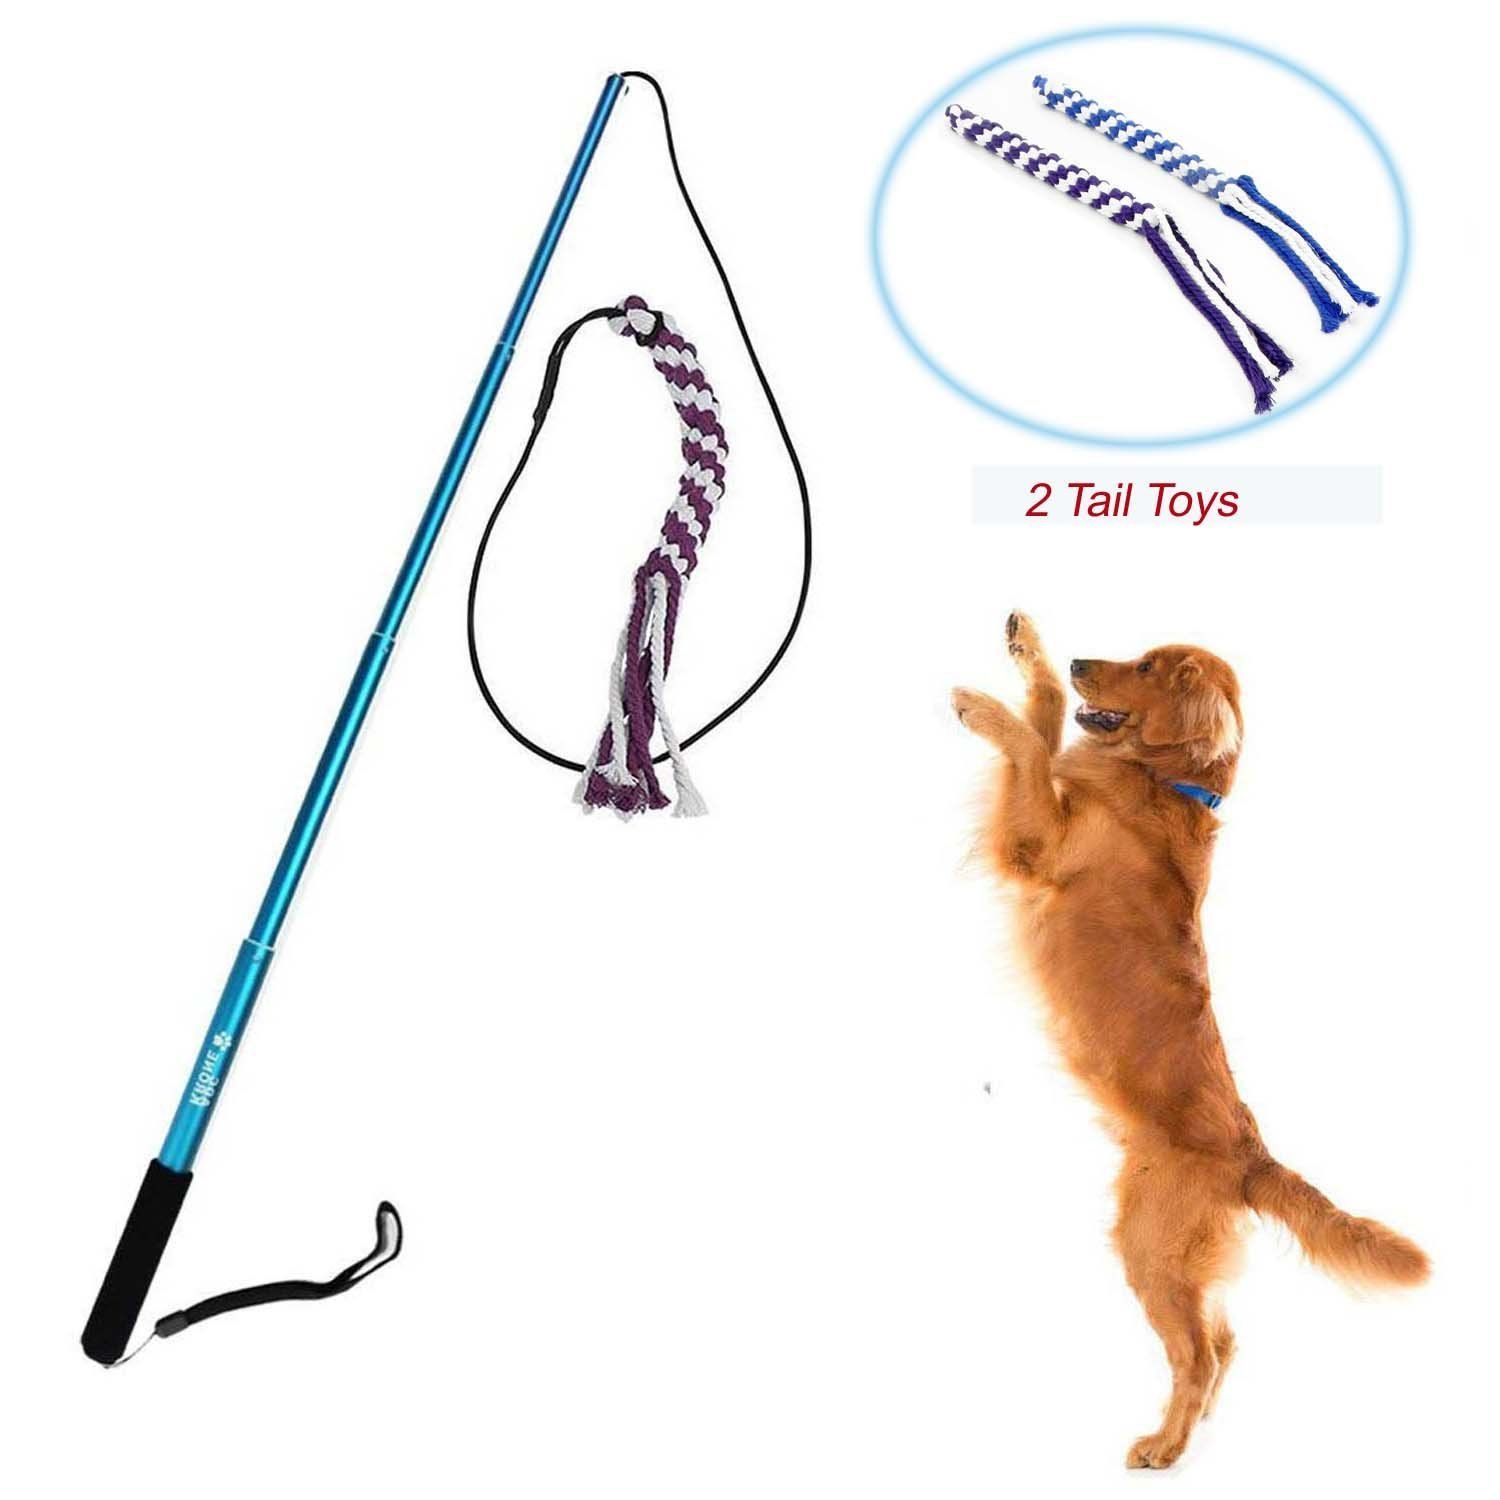 Wellbro Interactive Dog Extendable Teaser Wand with 2 Rope Chew